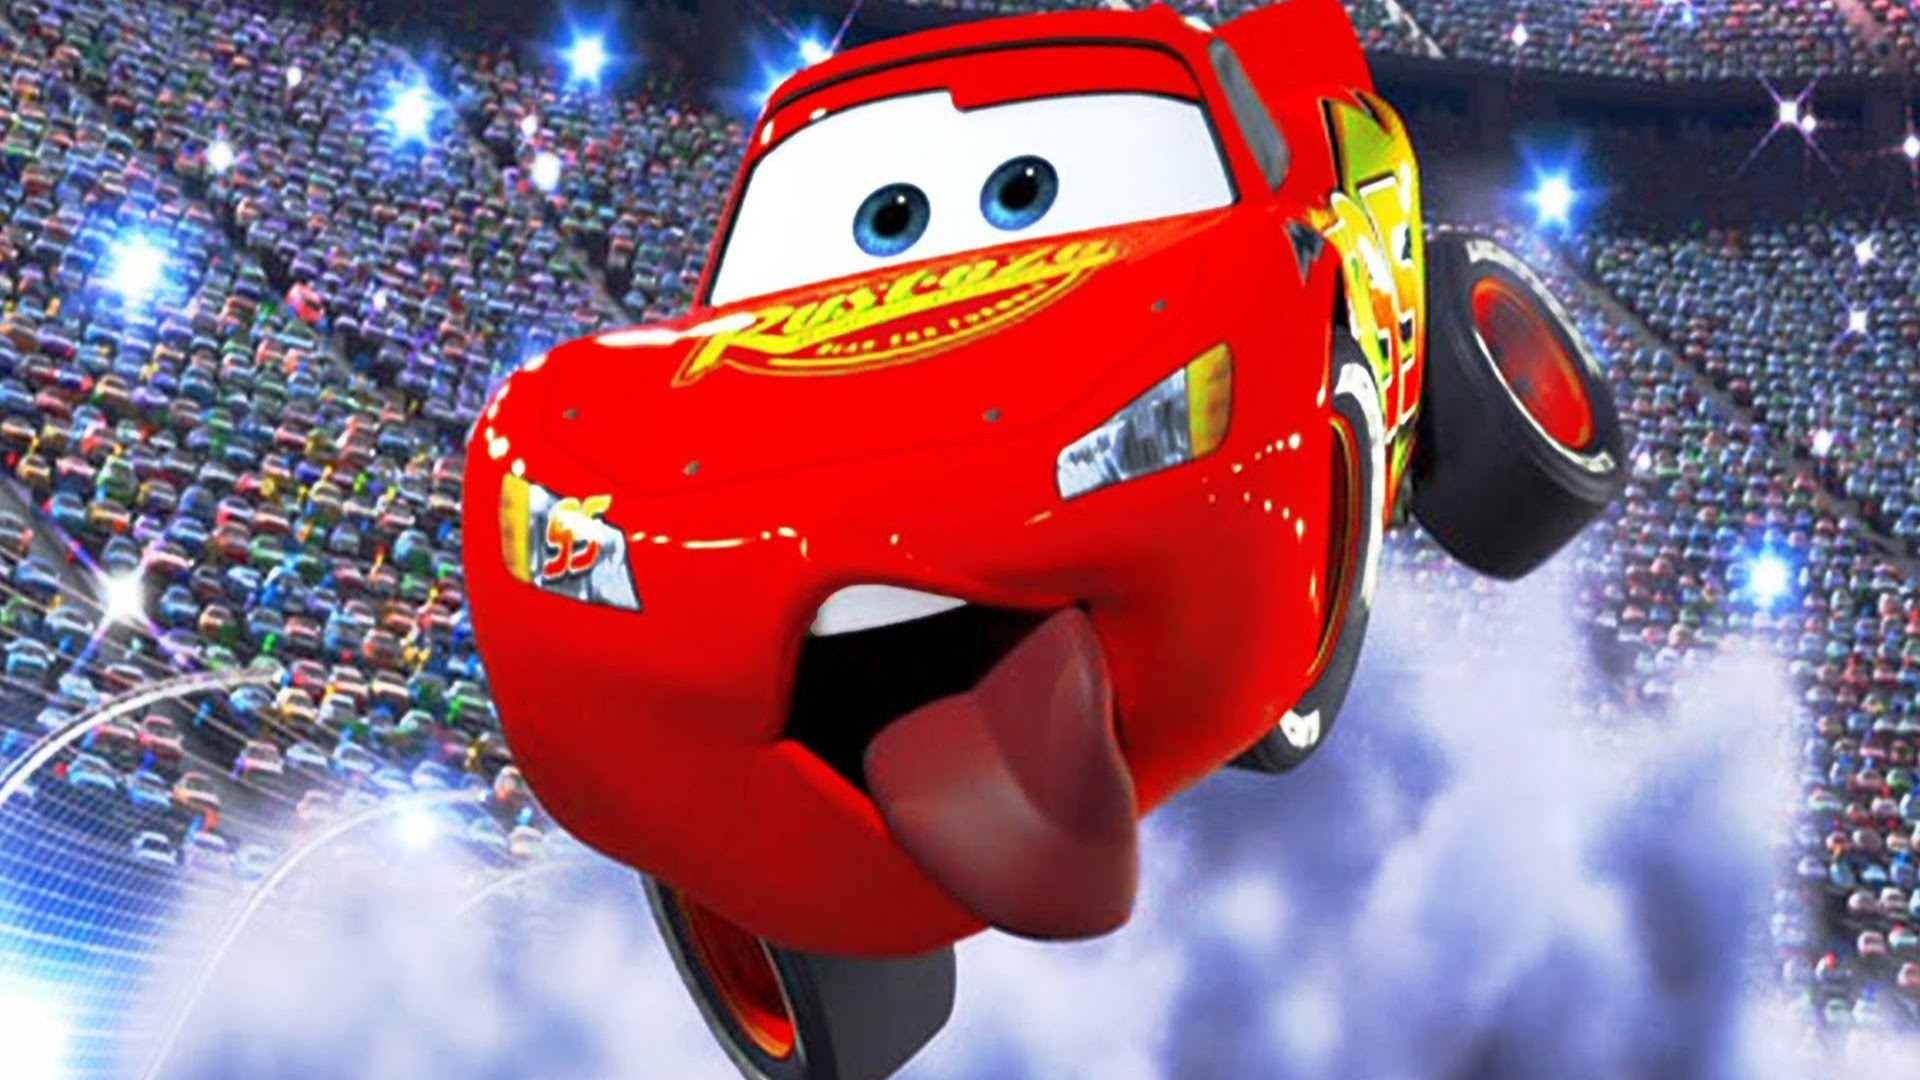 Disney Movie Inside Out 2015 Desktop & Iphone 6 Wallpapers - Disney Pixar Cars 2 , HD Wallpaper & Backgrounds